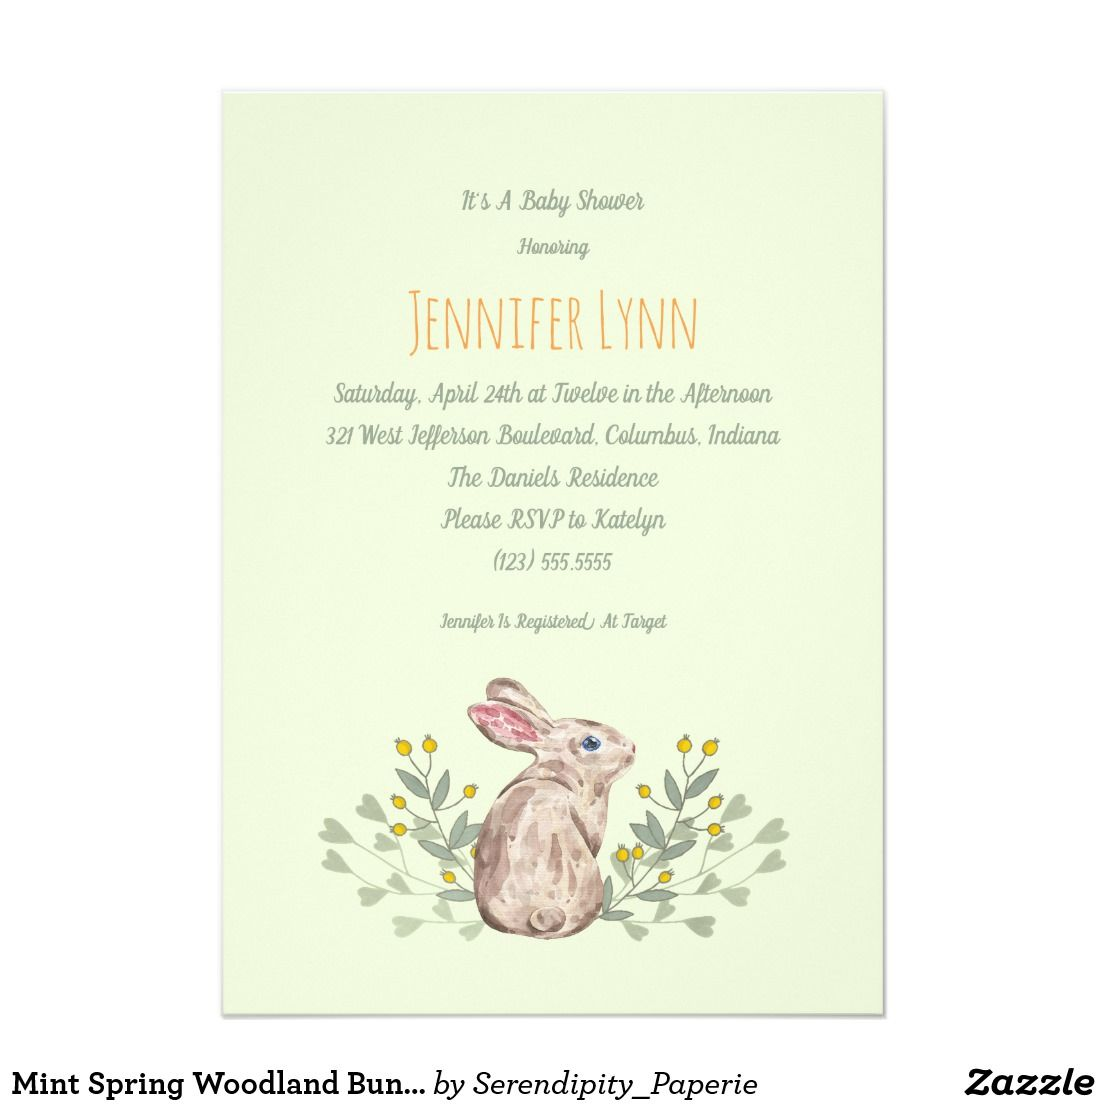 Mint Spring Woodland Bunny Baby Shower Invitation